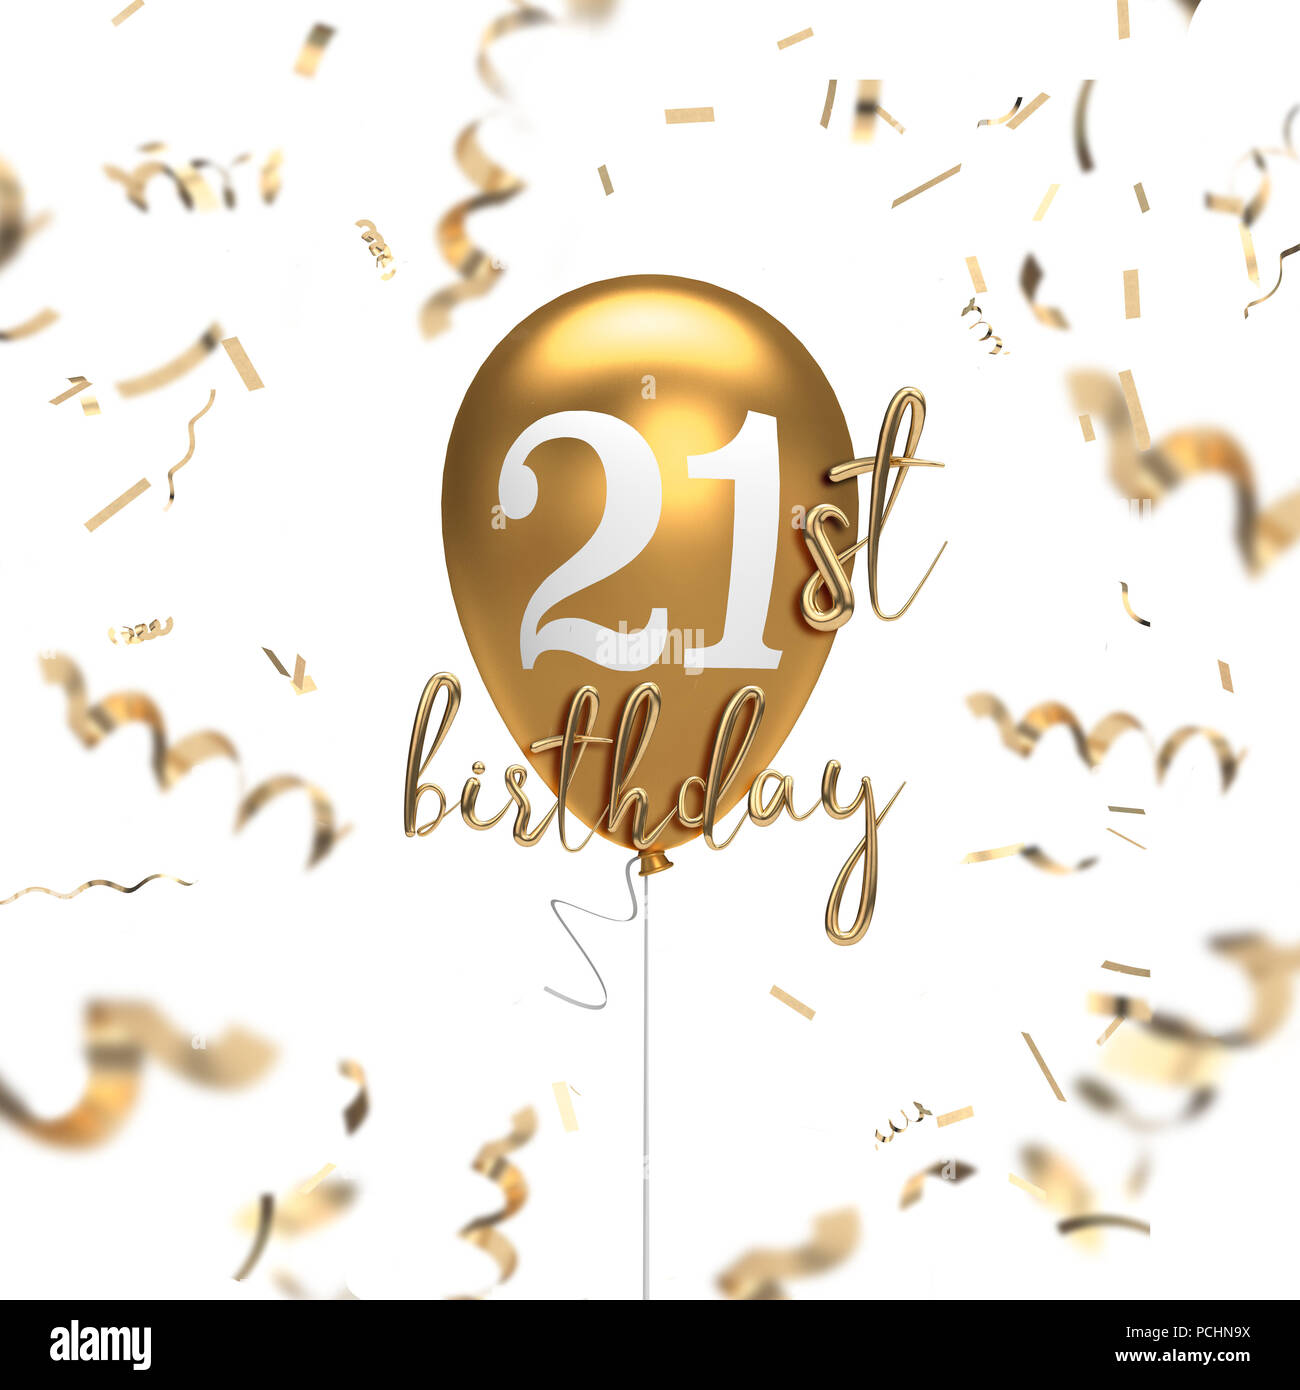 Happy 21st birthday gold balloon greeting background. 3D Rendering